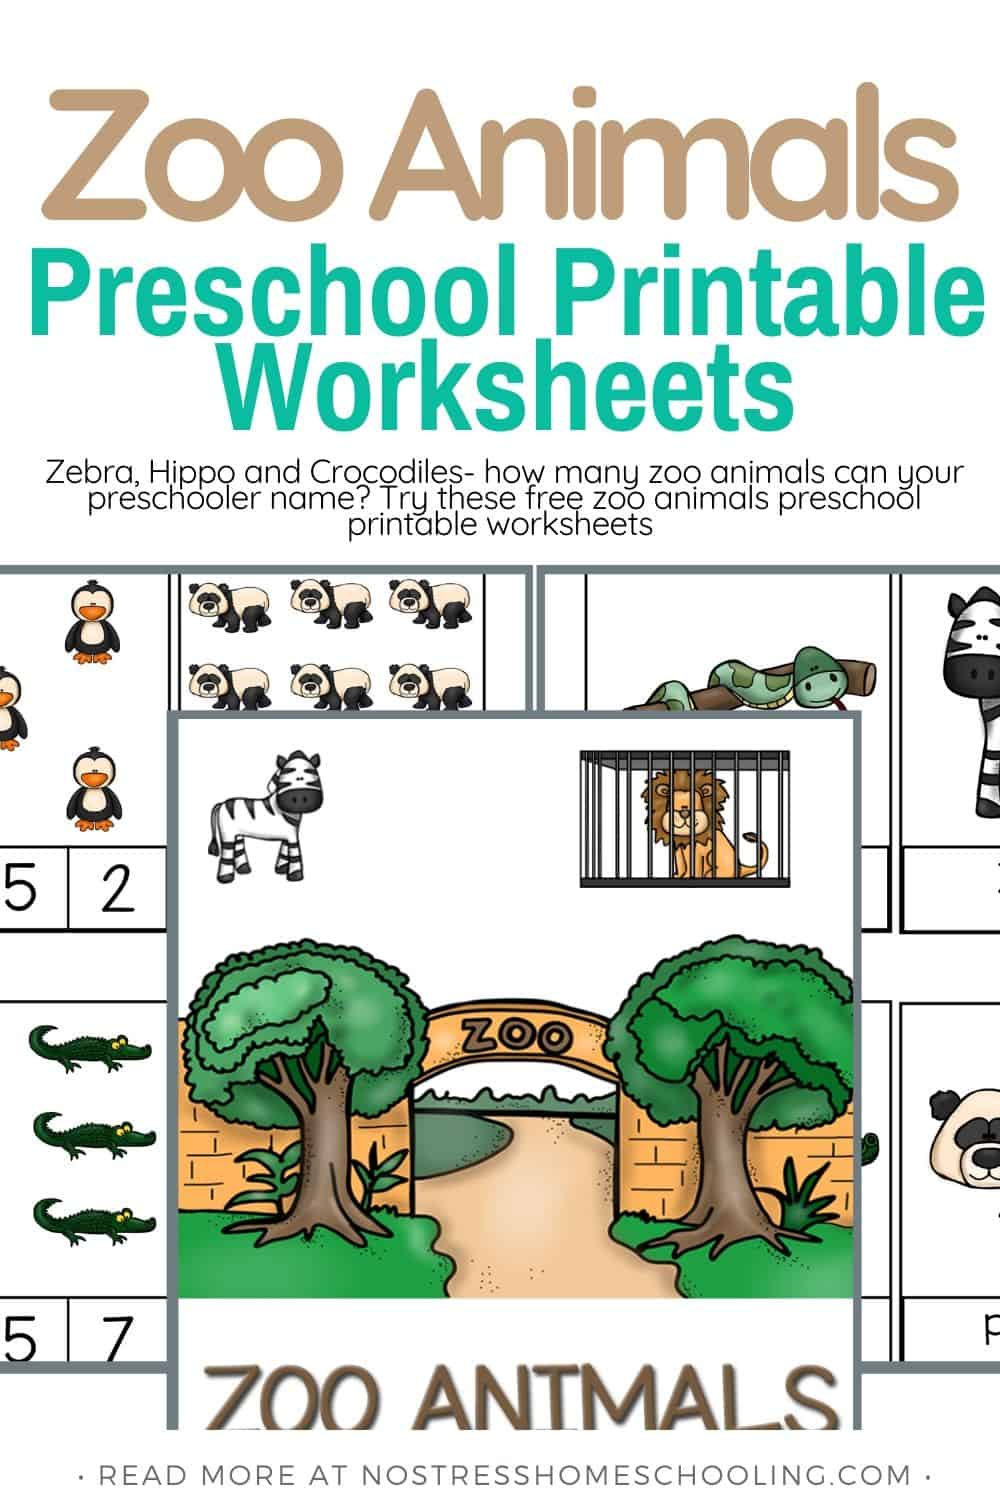 PICTURE SHOWING ZOO ANIMALS PRESCHOOL PRINTABLE WORKSHEETS